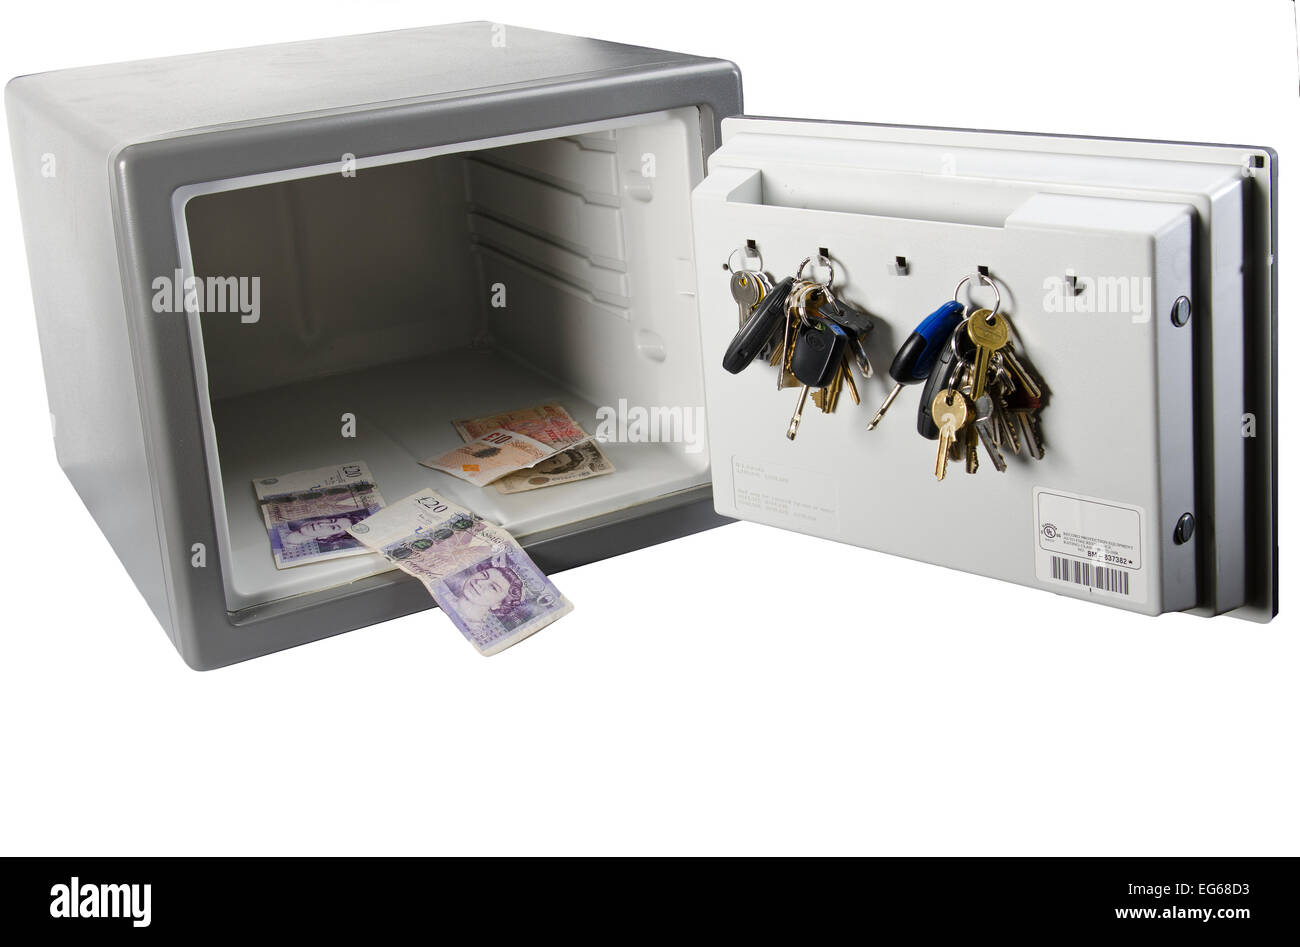 cut out image of combination safe - Stock Image